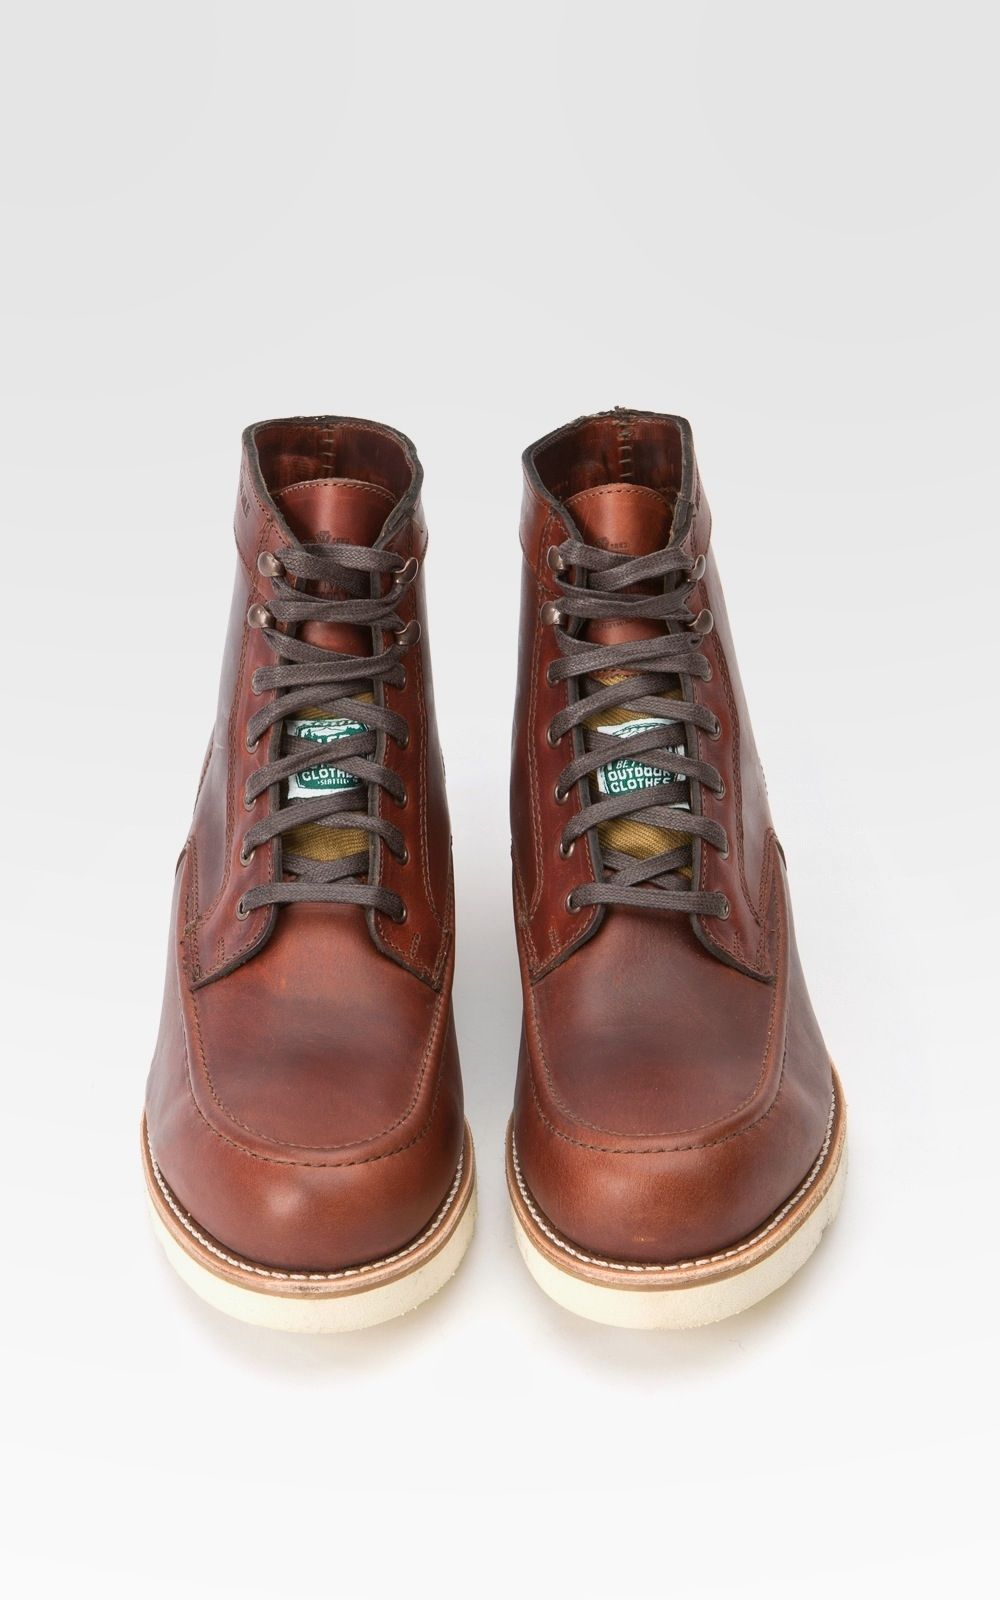 cultizm com wolverine 1000 mile boot emerson boot rust wolverine